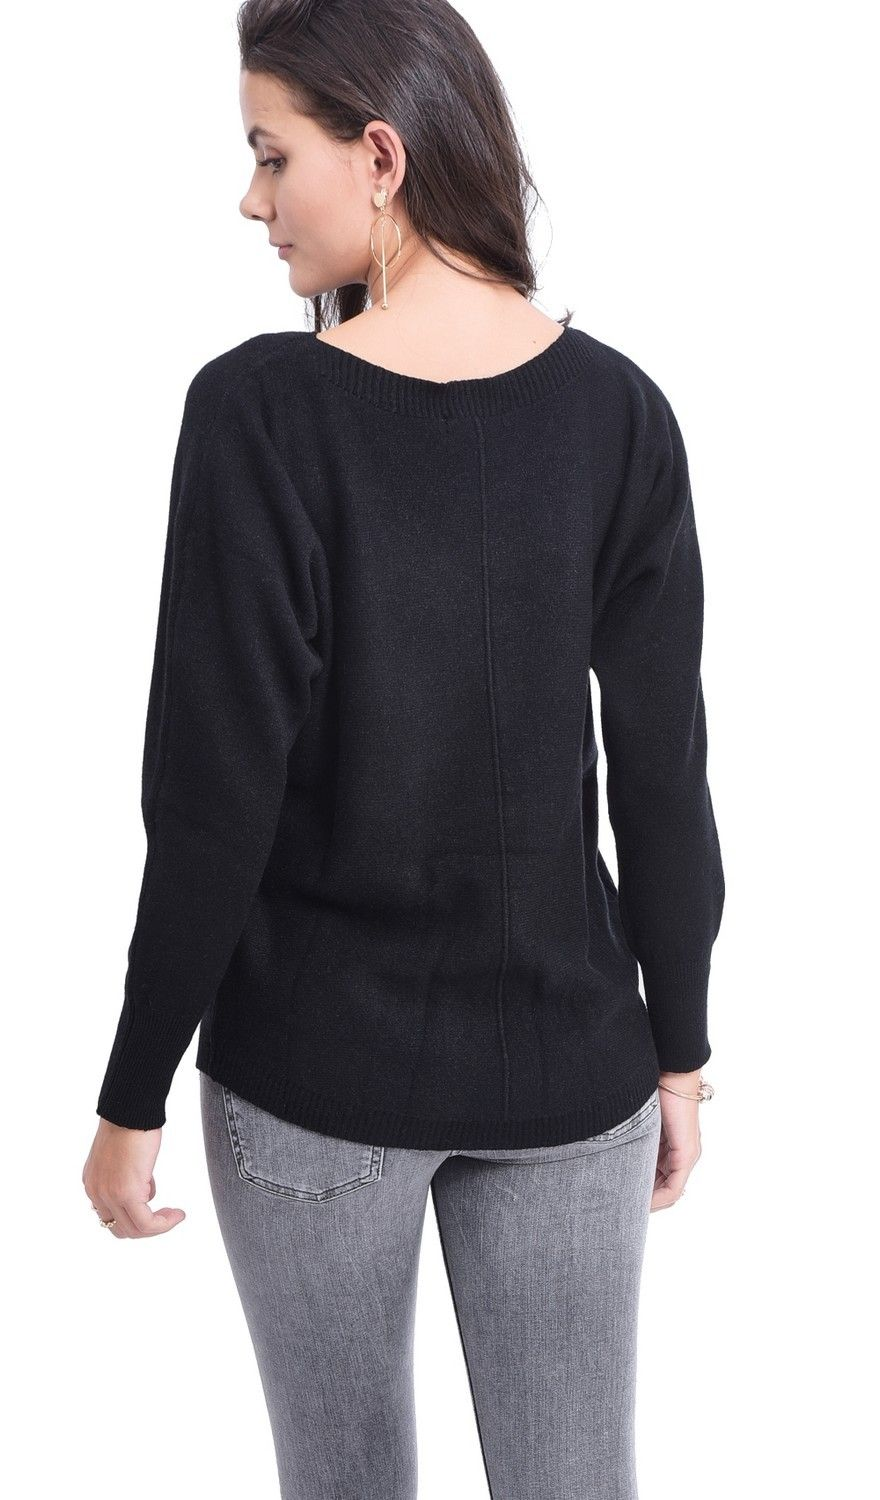 Assuili Boat Neck Batwing Sleeve Sweater in Black